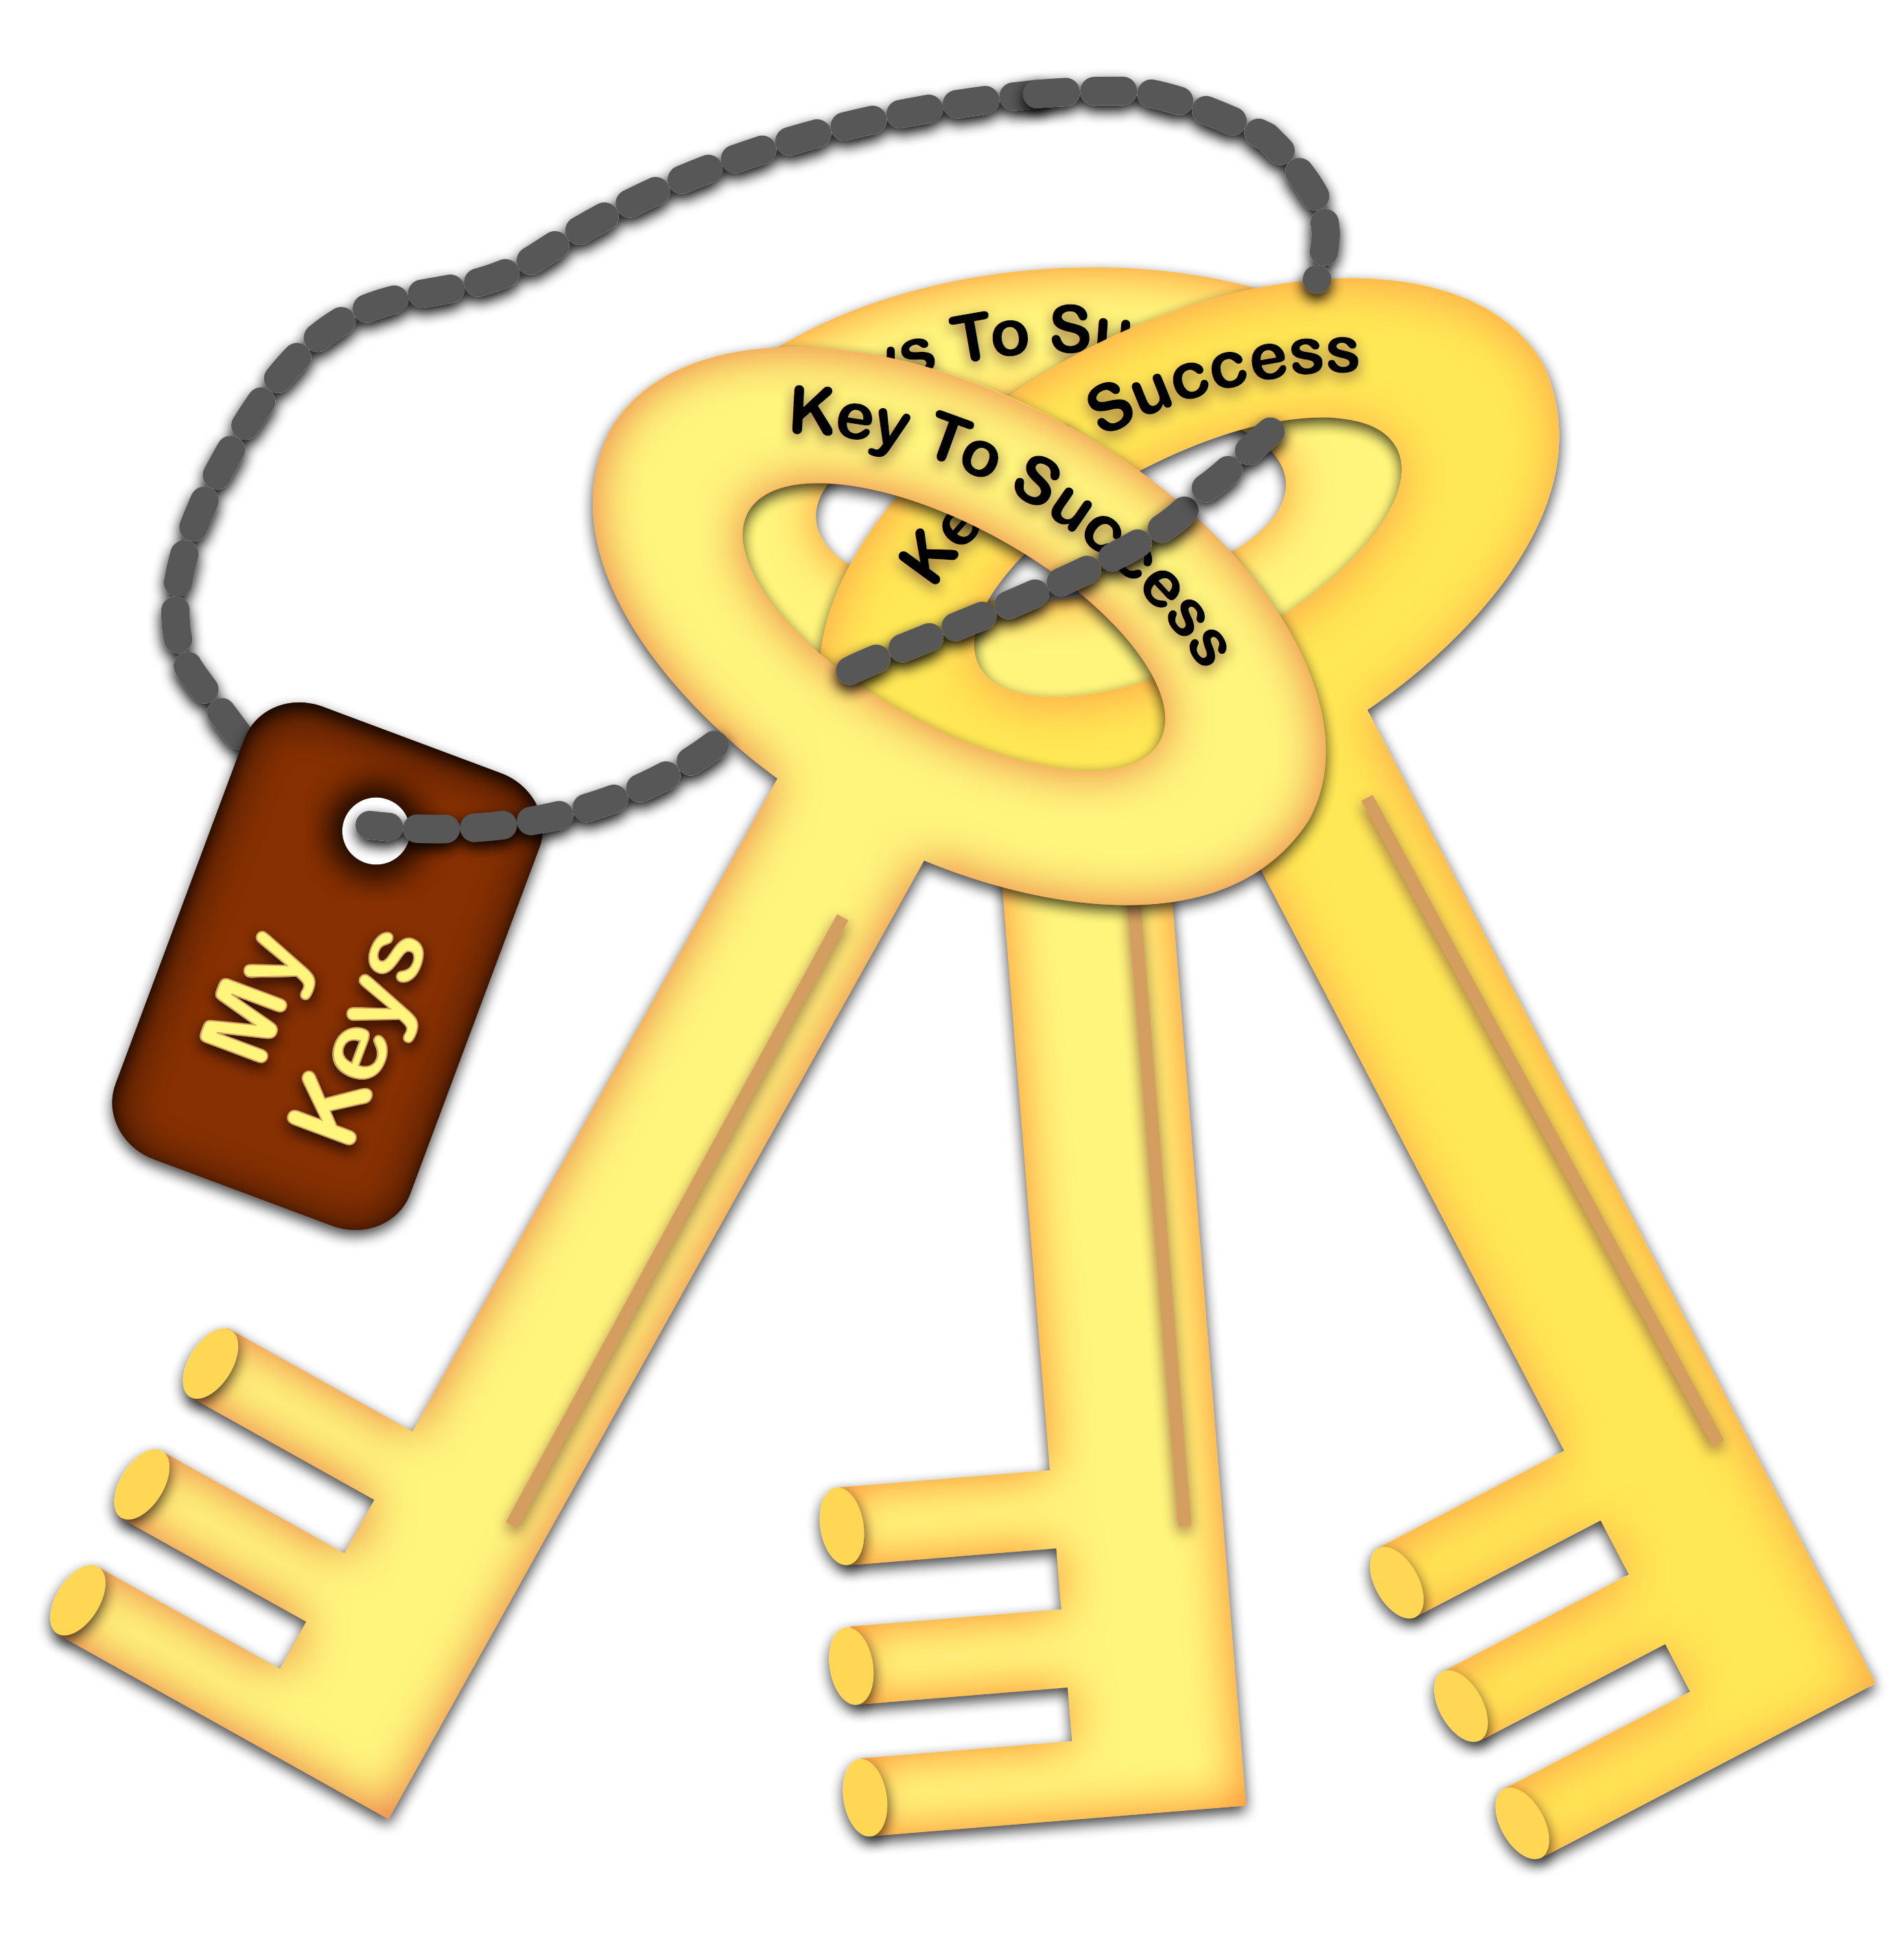 Keys to success png